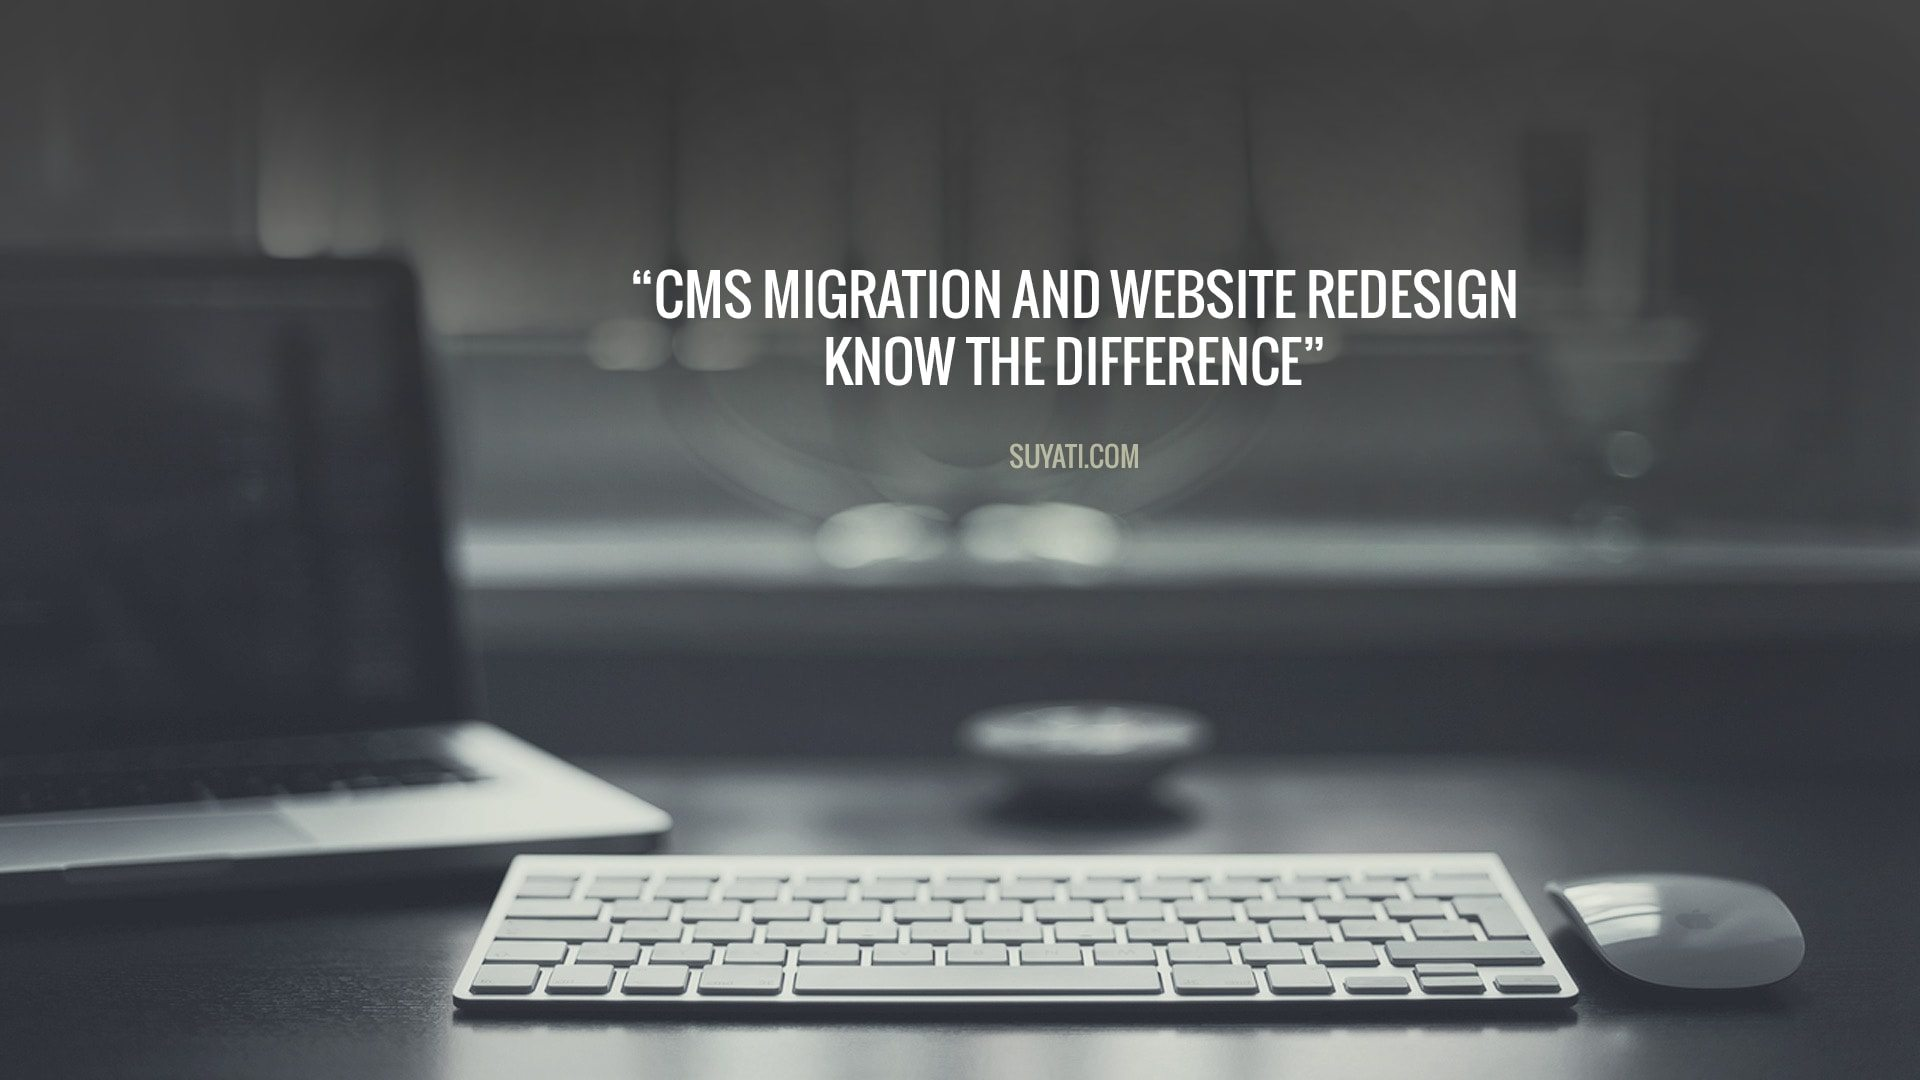 CMS Migration and Website Redesign Know the Difference